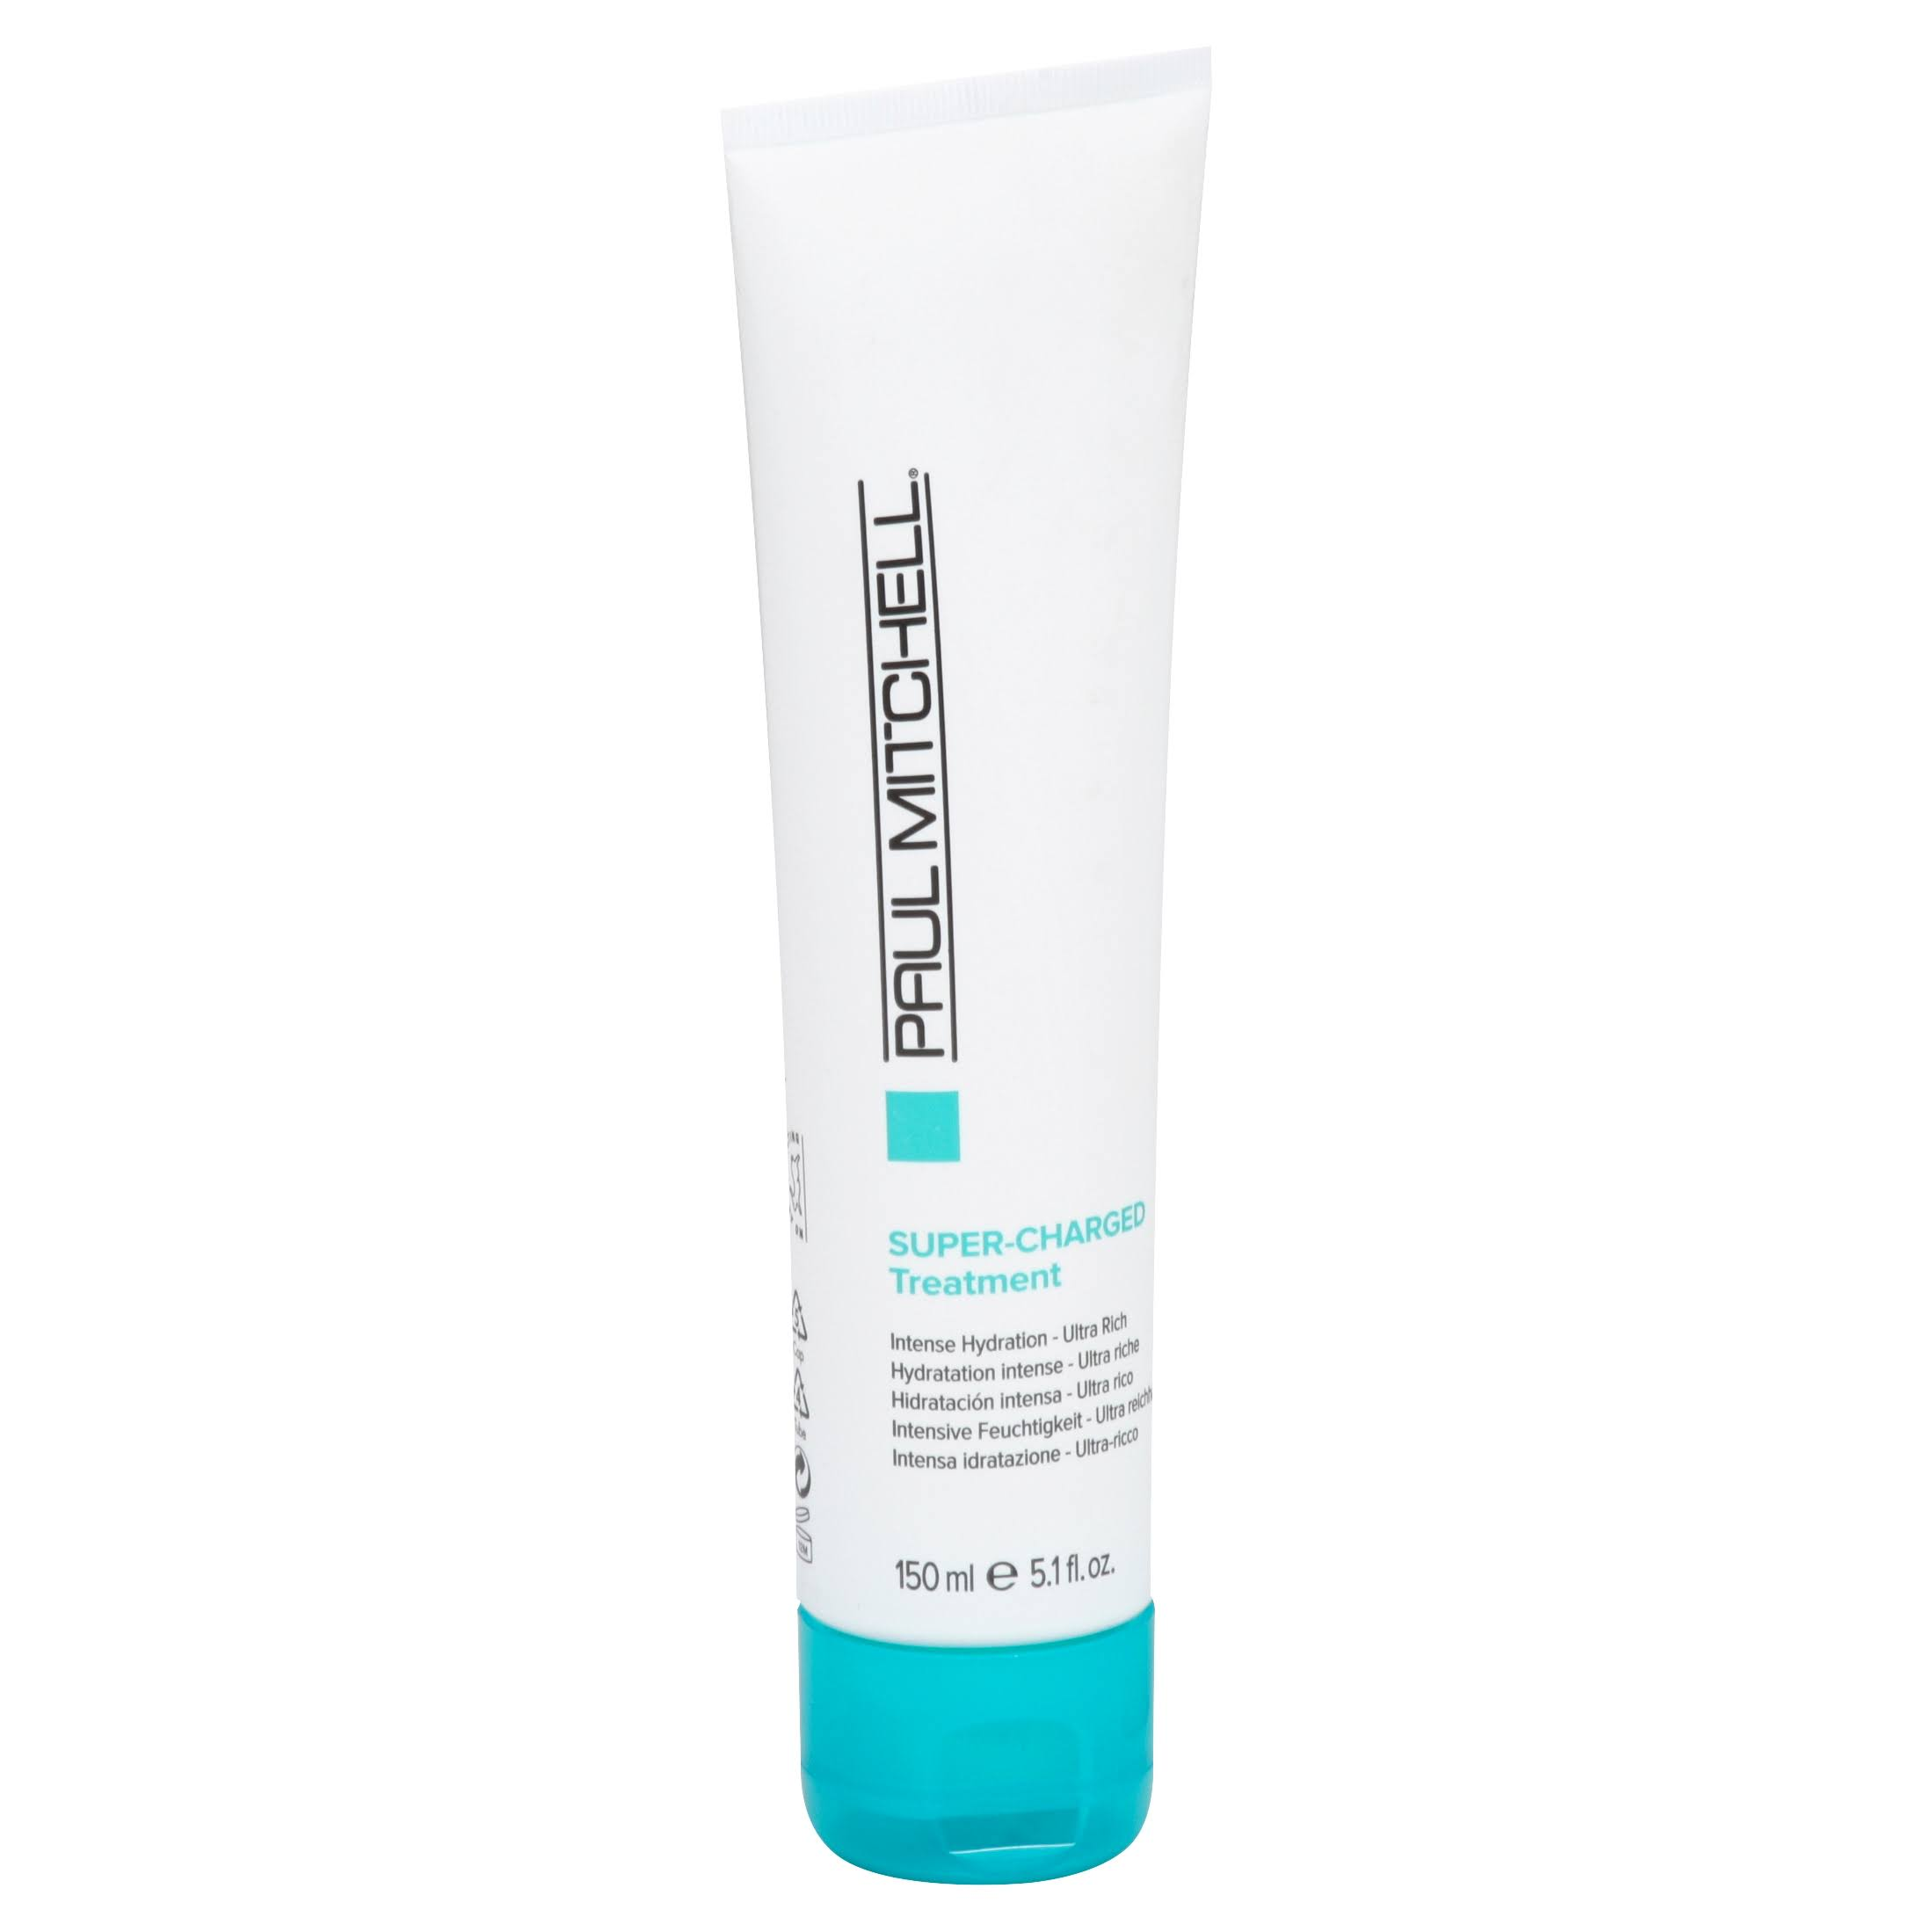 Paul Mitchell Super-Charged Treatment - 150ml